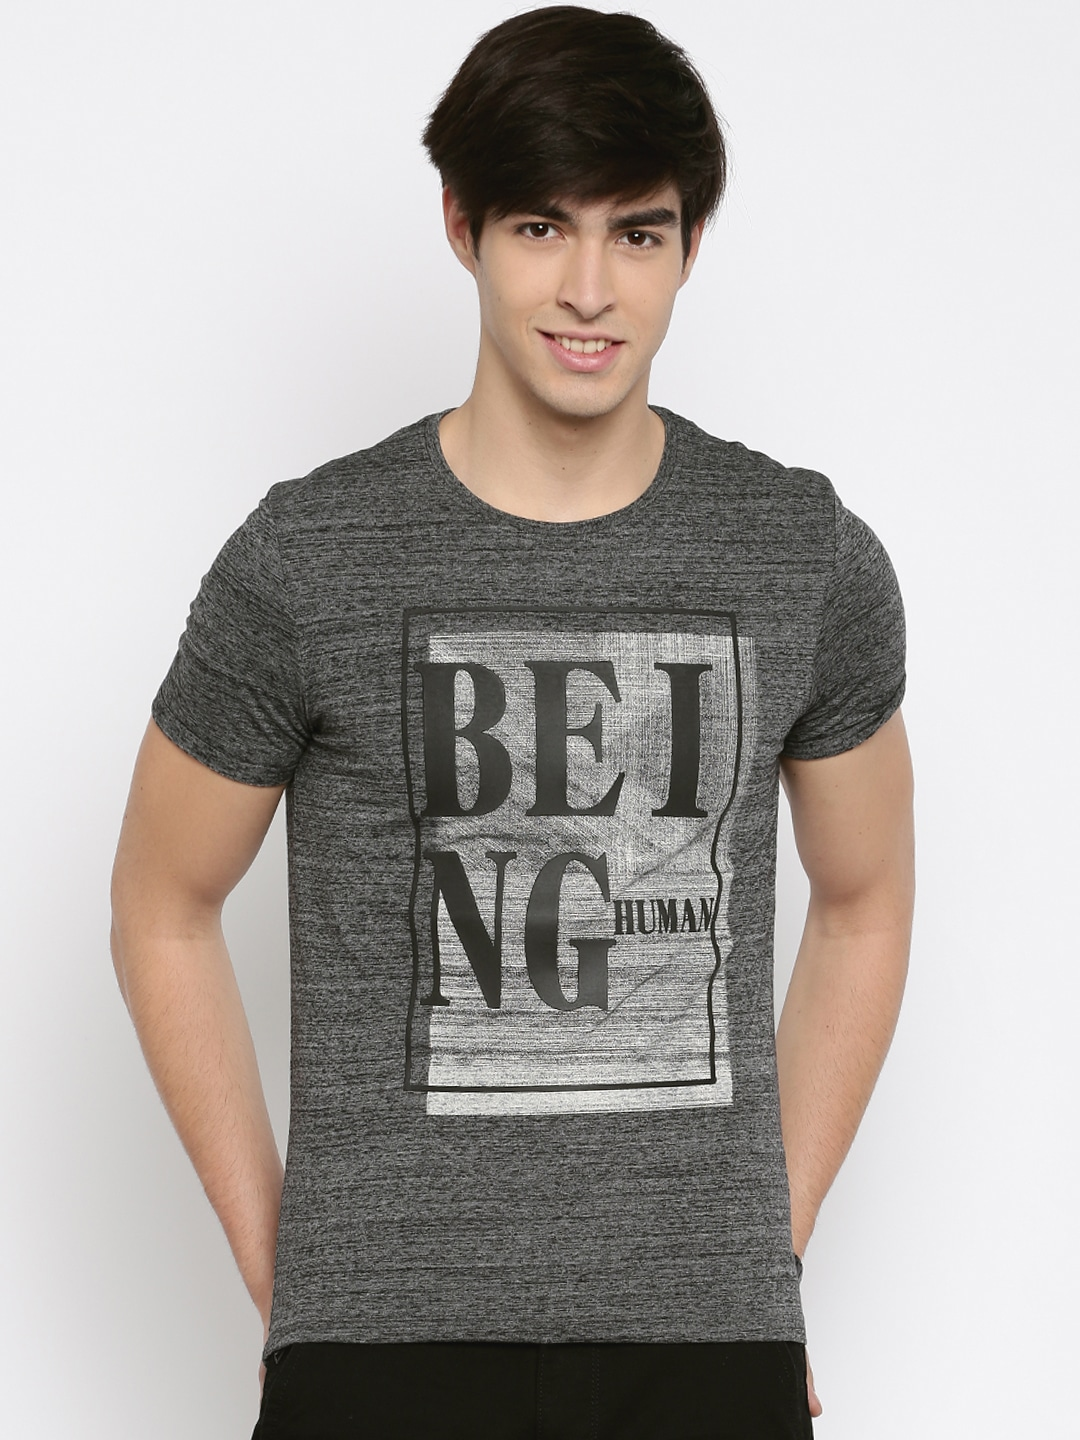 Design your own t shirt india cash on delivery - Being Human Men Grey Self Design Round Neck T Shirt